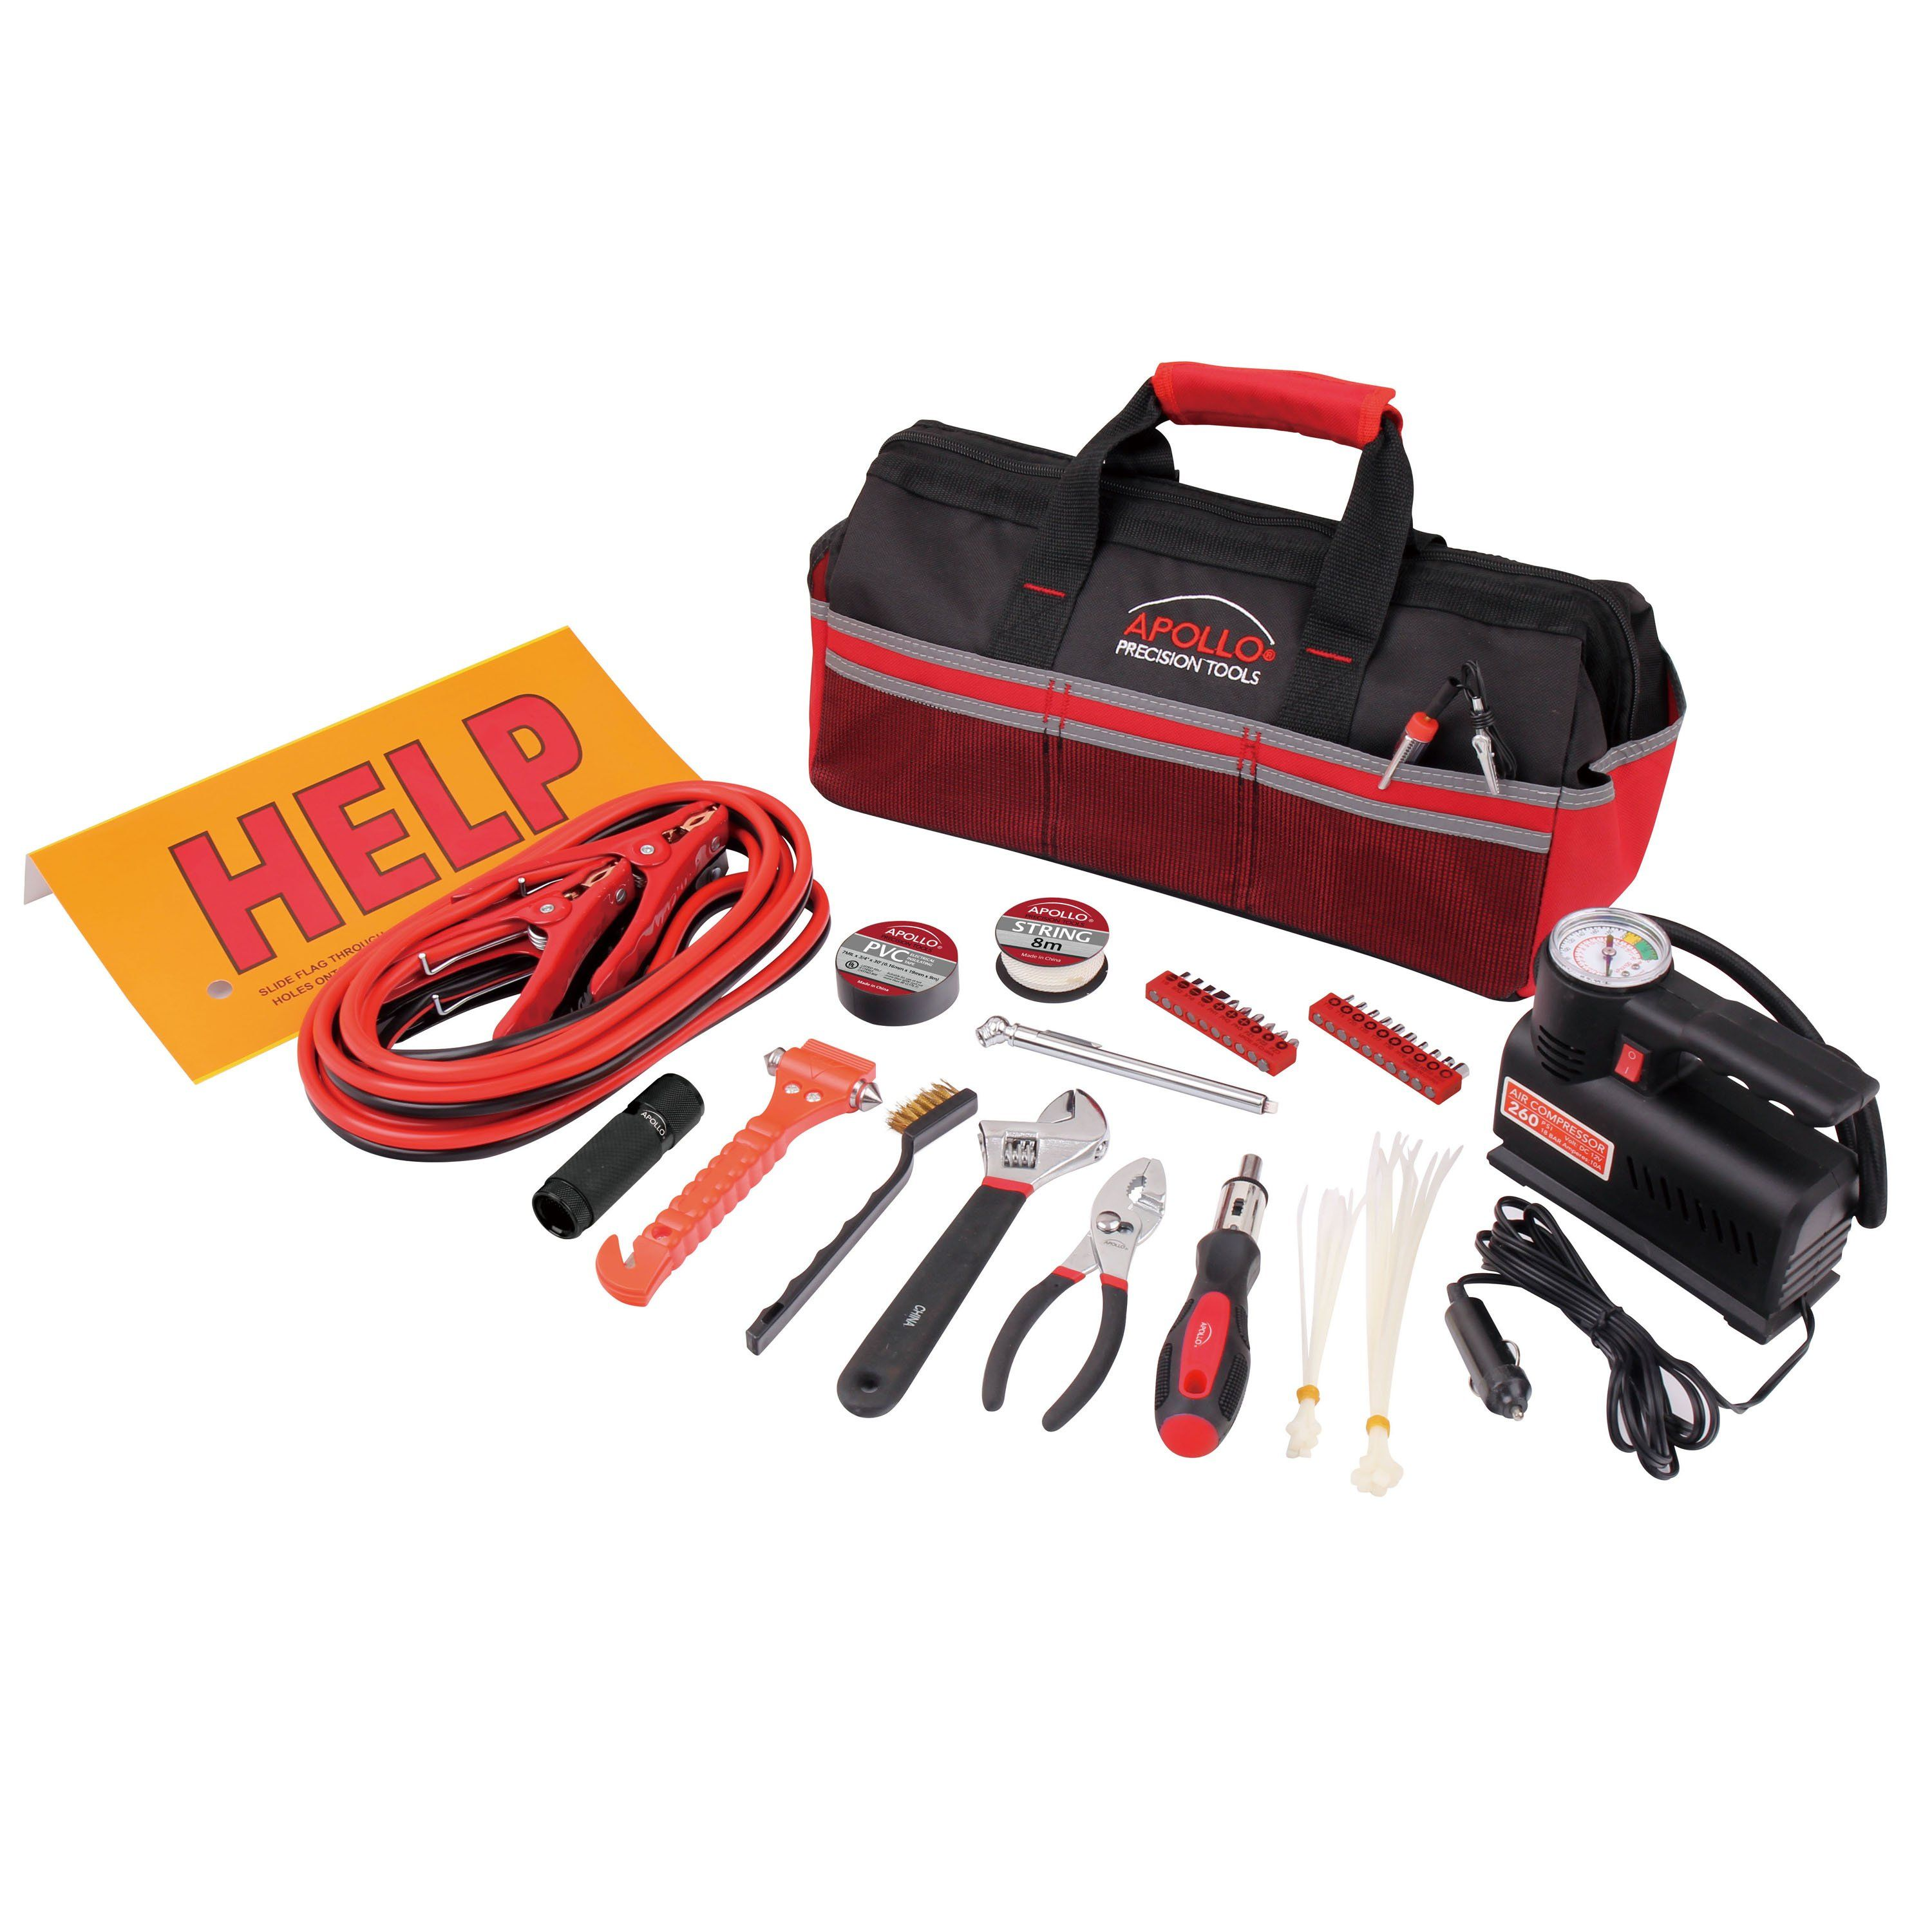 53 Piece Roadside Emergency Tool Kit with Air Compressor